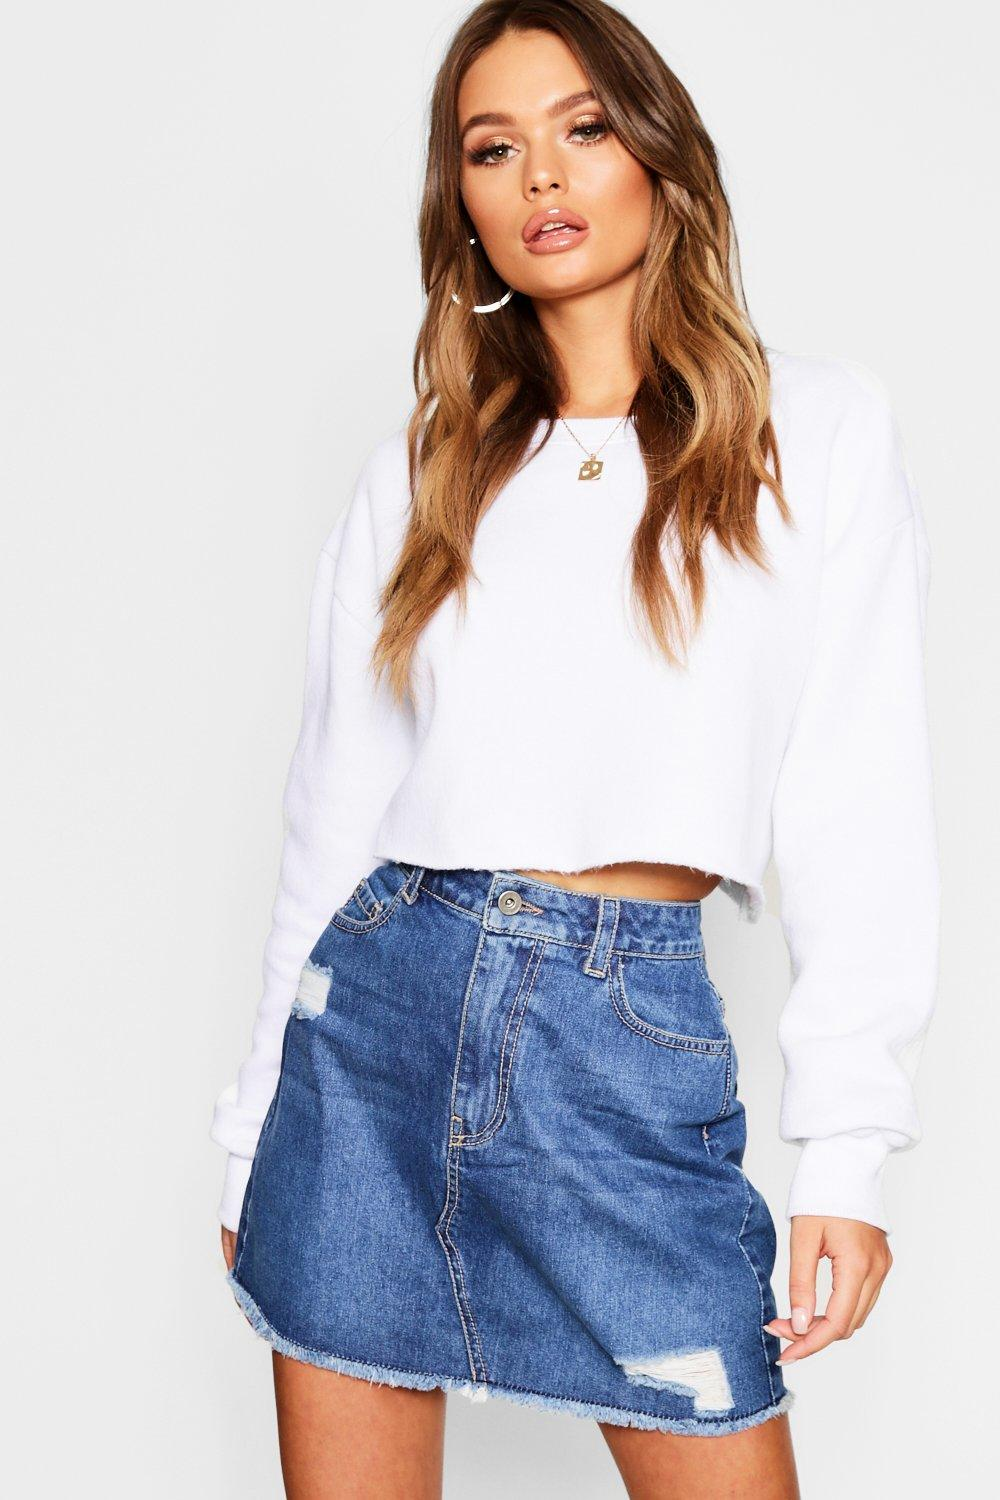 b6e0cabd77 Ripped Distressed Denim Mini Skirt. Hover to zoom